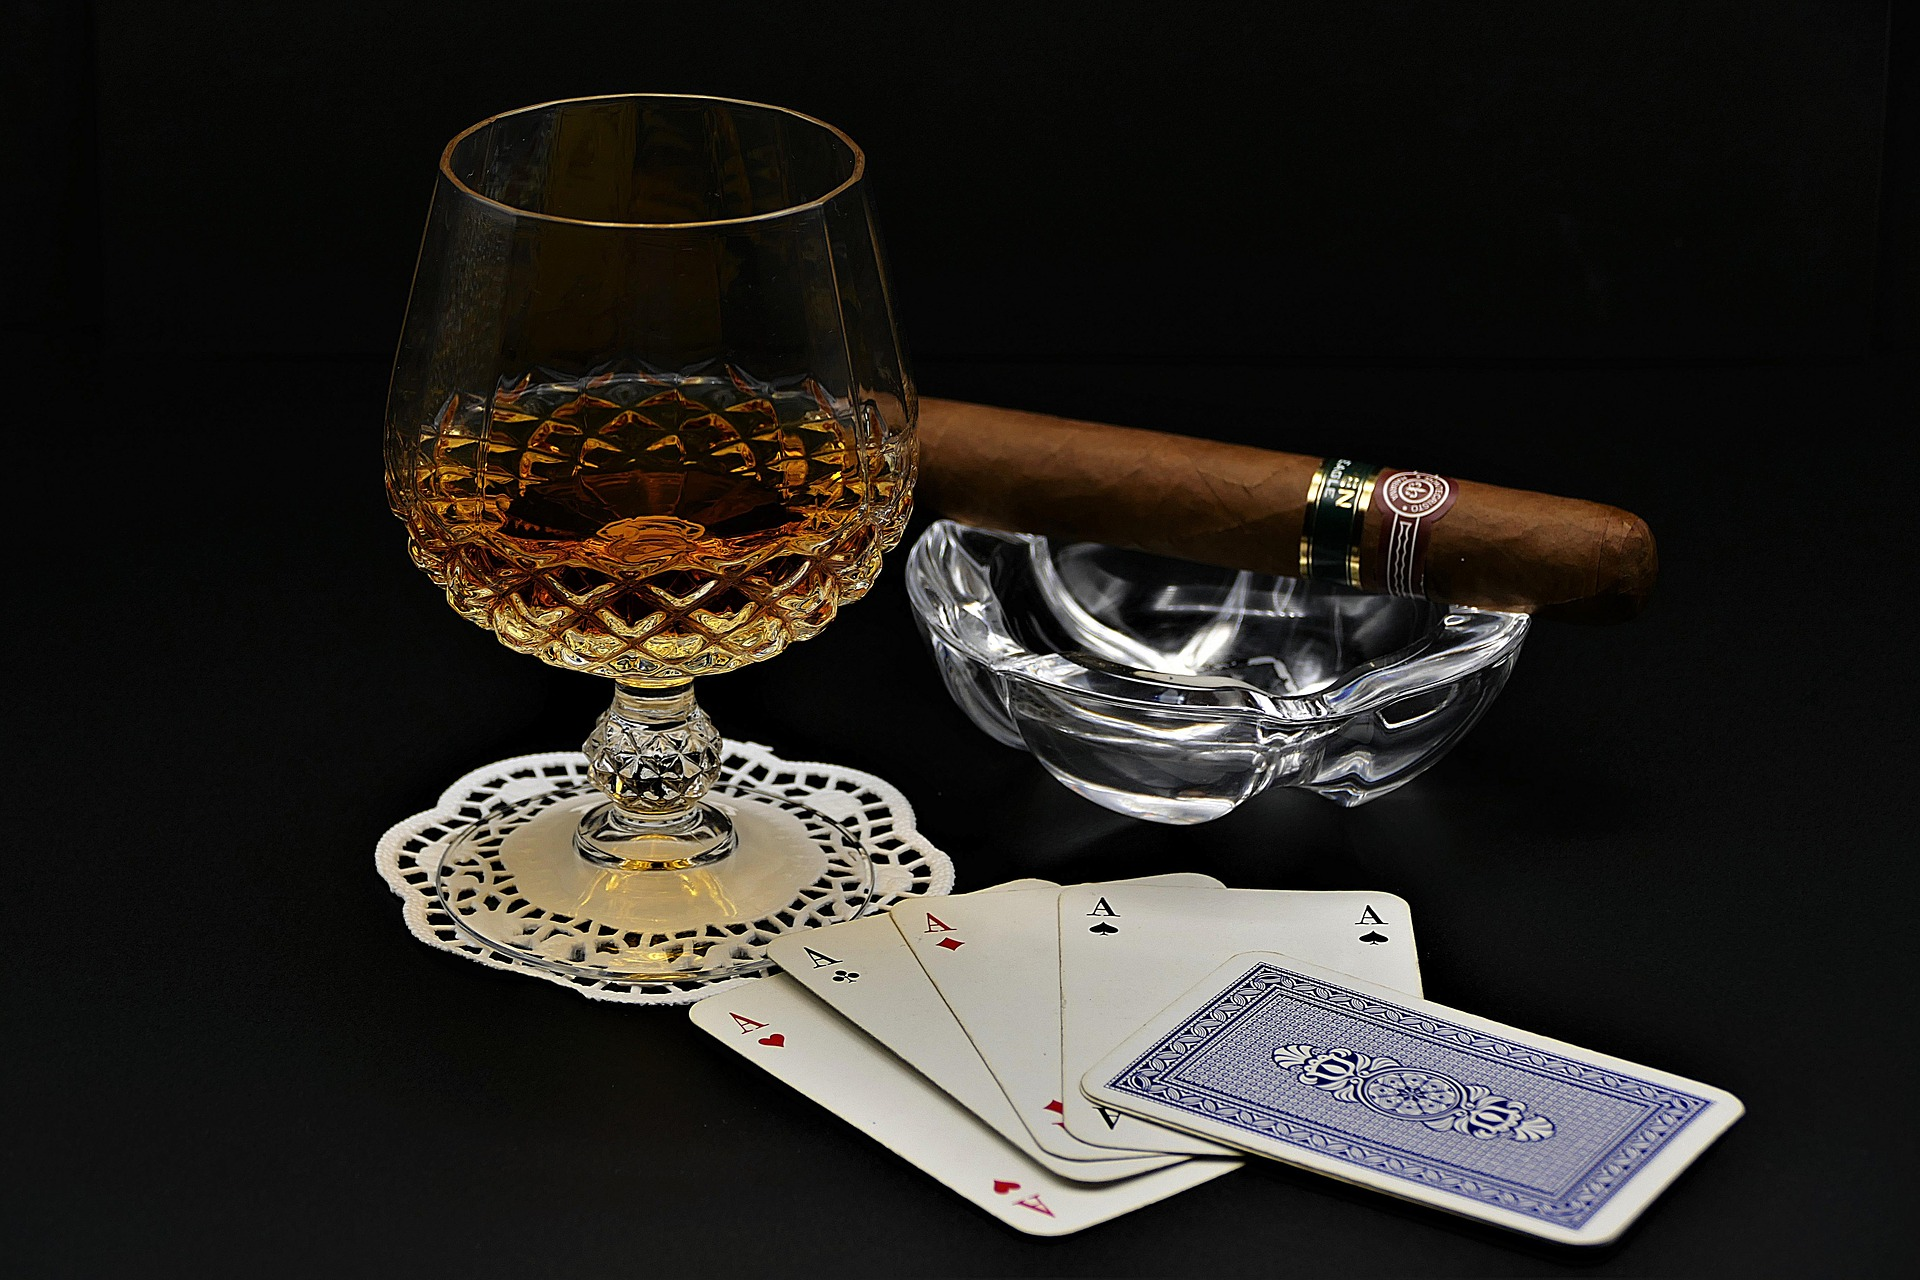 Whisky, poker cards and cigars on a table